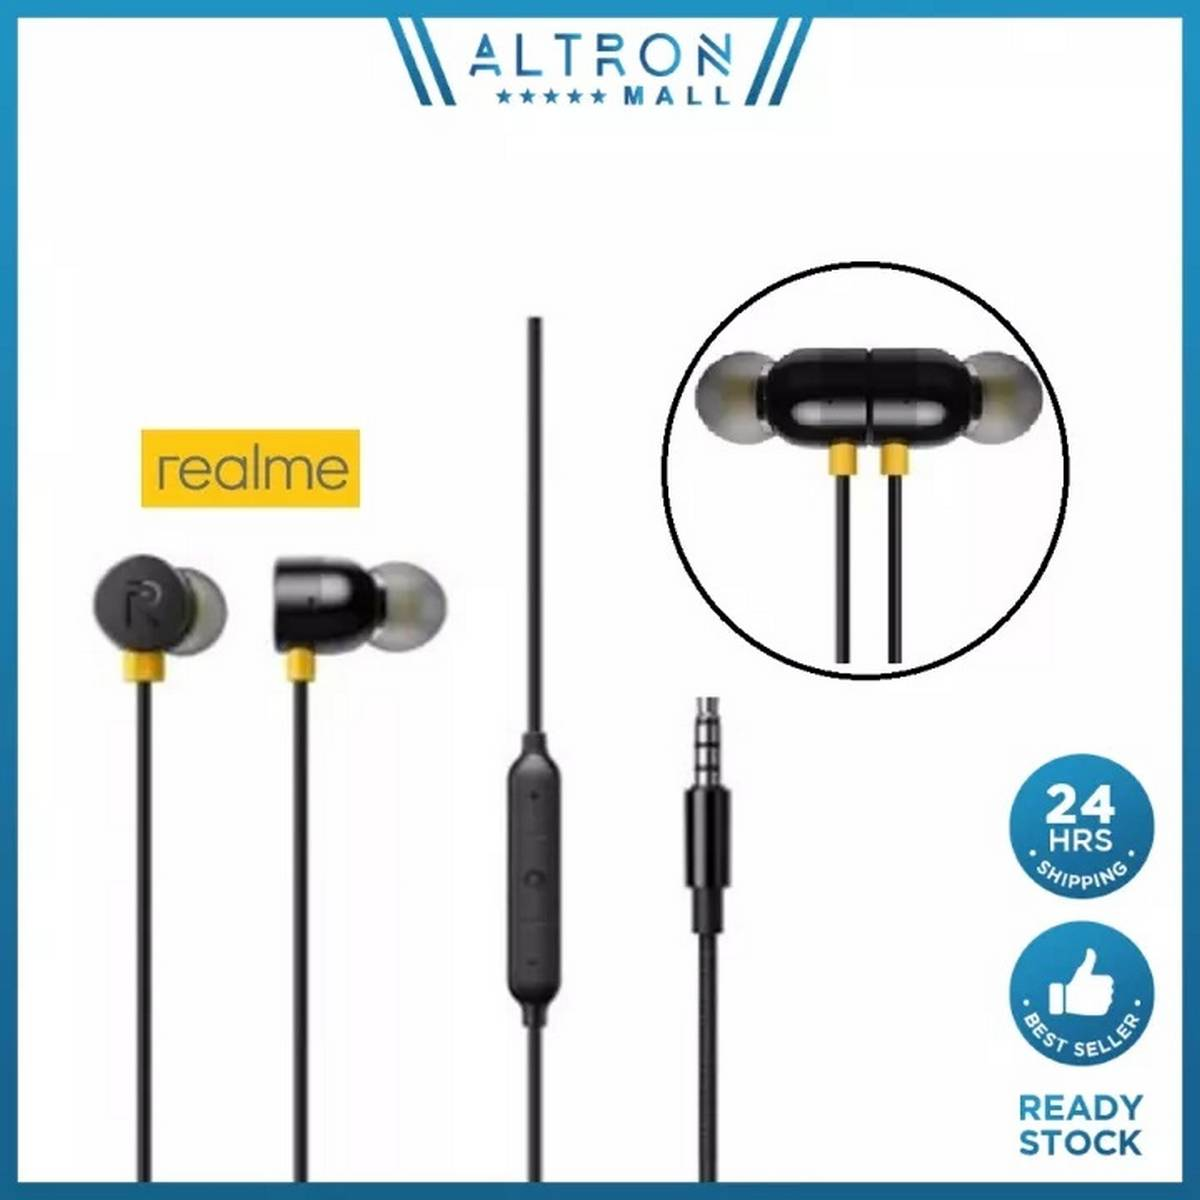 Realme_ Buds 2 Earphones Handfree Wired Handfree/Earphone Quality Stereo Music Sound for PUBG Real Gamming Watching Movies - with Mic Super comfortable cute handfree for girls men - 3.5mm jack Earphones Ear Buds , Head phones for Android Mobile Phone